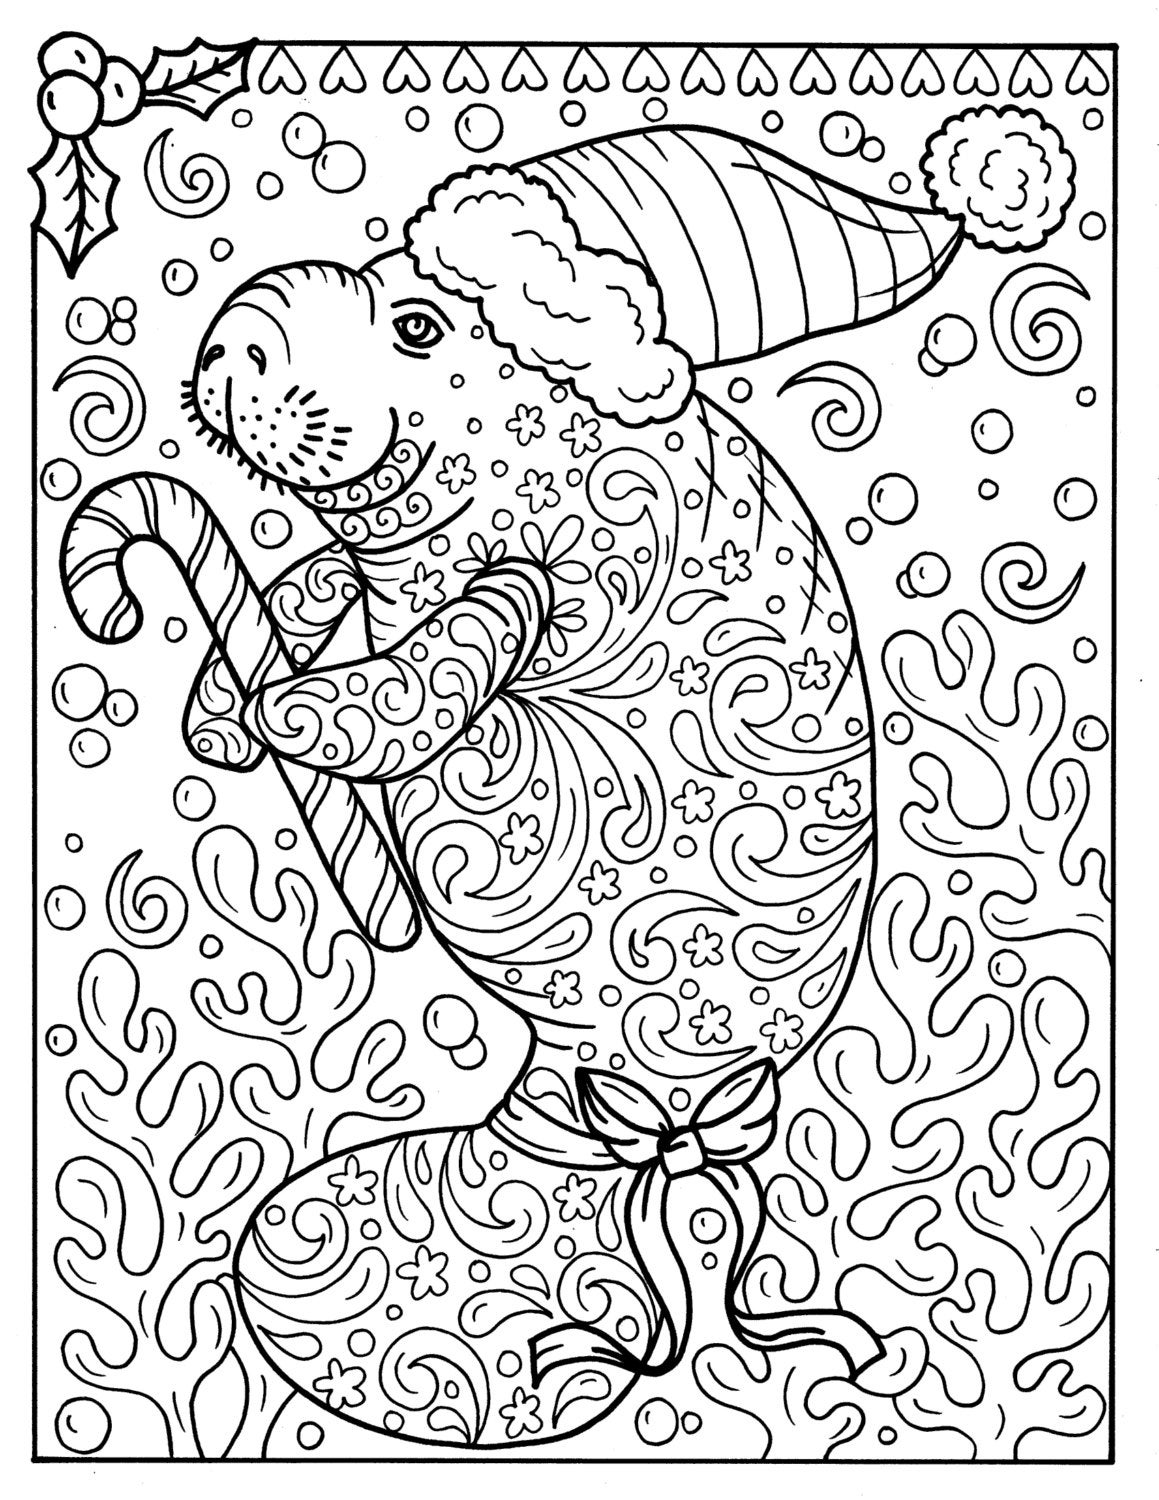 Manatee Christmas Coloring page Instant Download Adult | Etsy